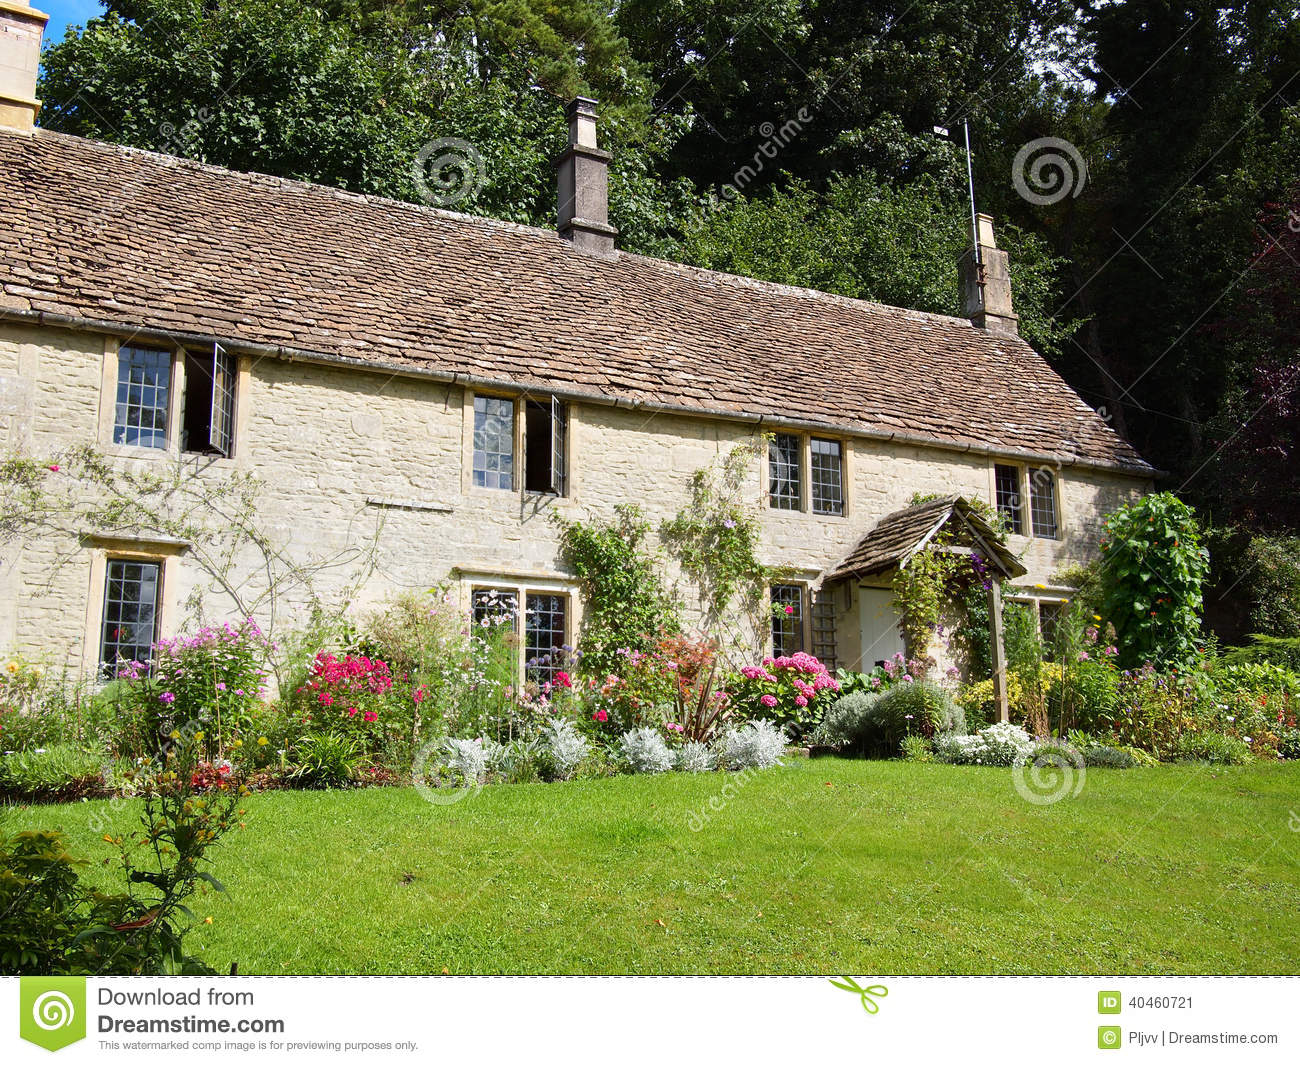 Cottage anglais avec le jardin d 39 agr ment photo stock for Jardin de cottage anglais